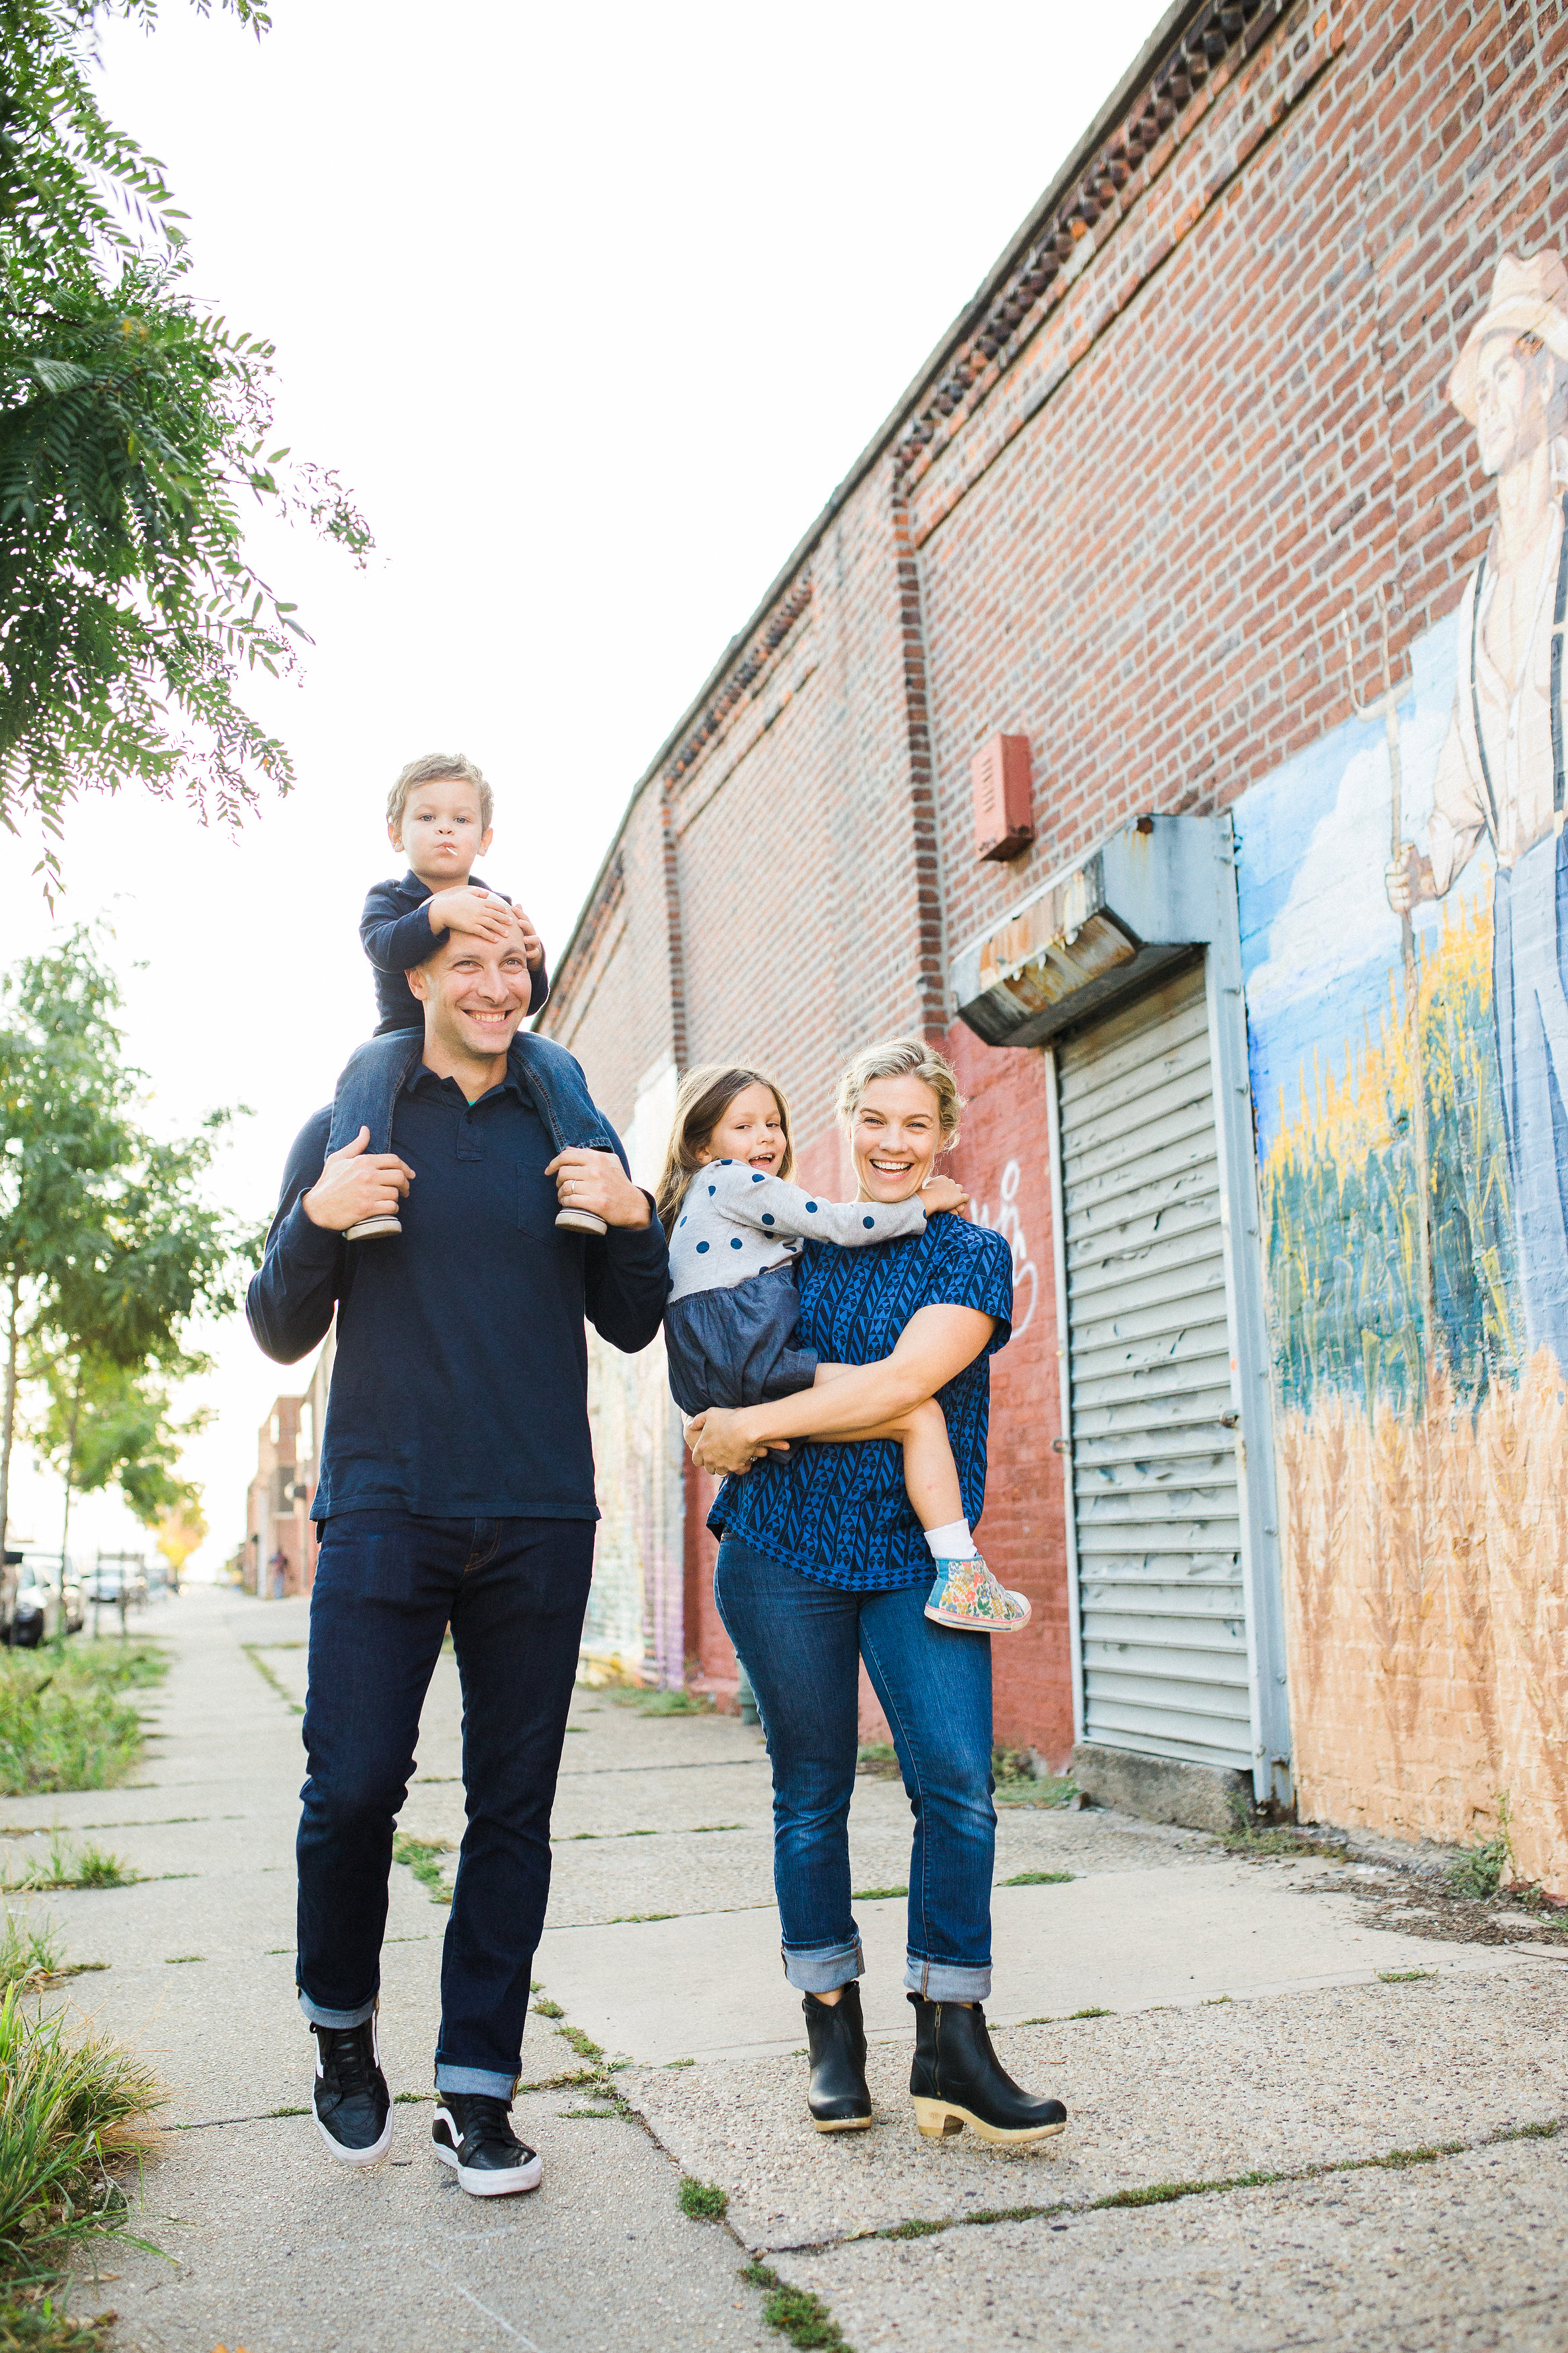 rothberg-family_brooklyn-red-hook-family-photography-1-21.jpg